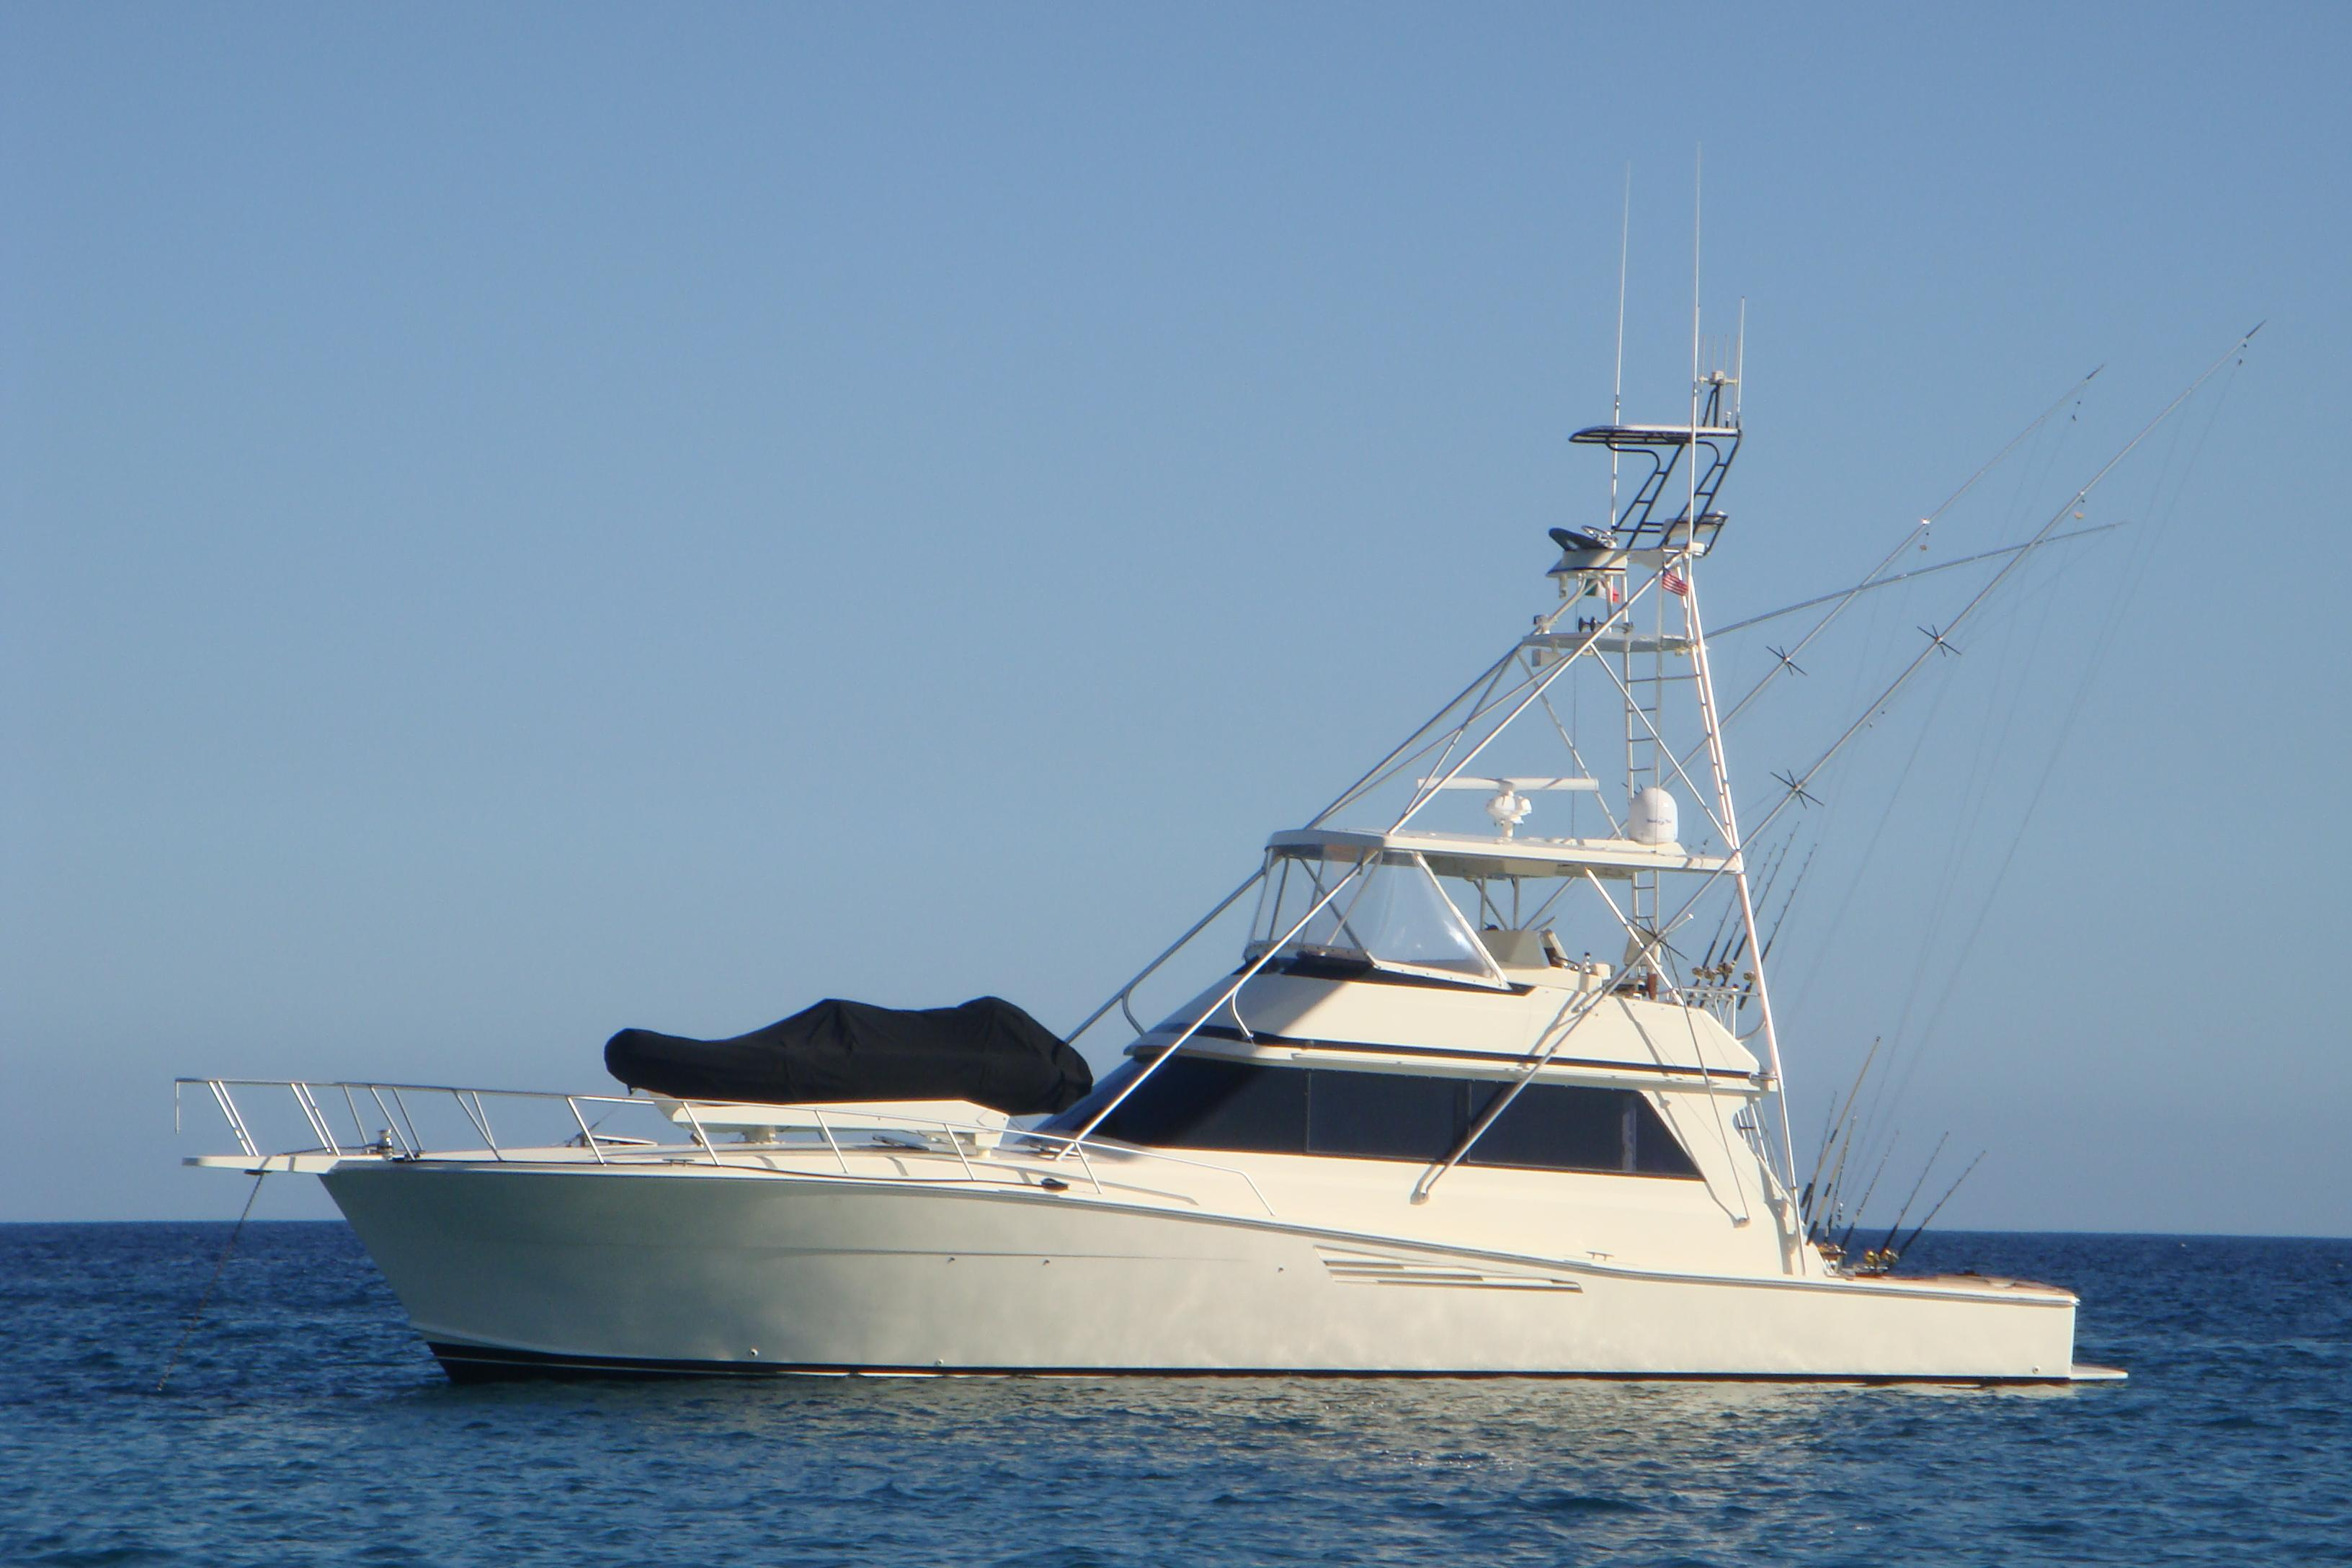 57 viking yachts 1989 reel energy for sale in san diego for Fishing boats for sale san diego